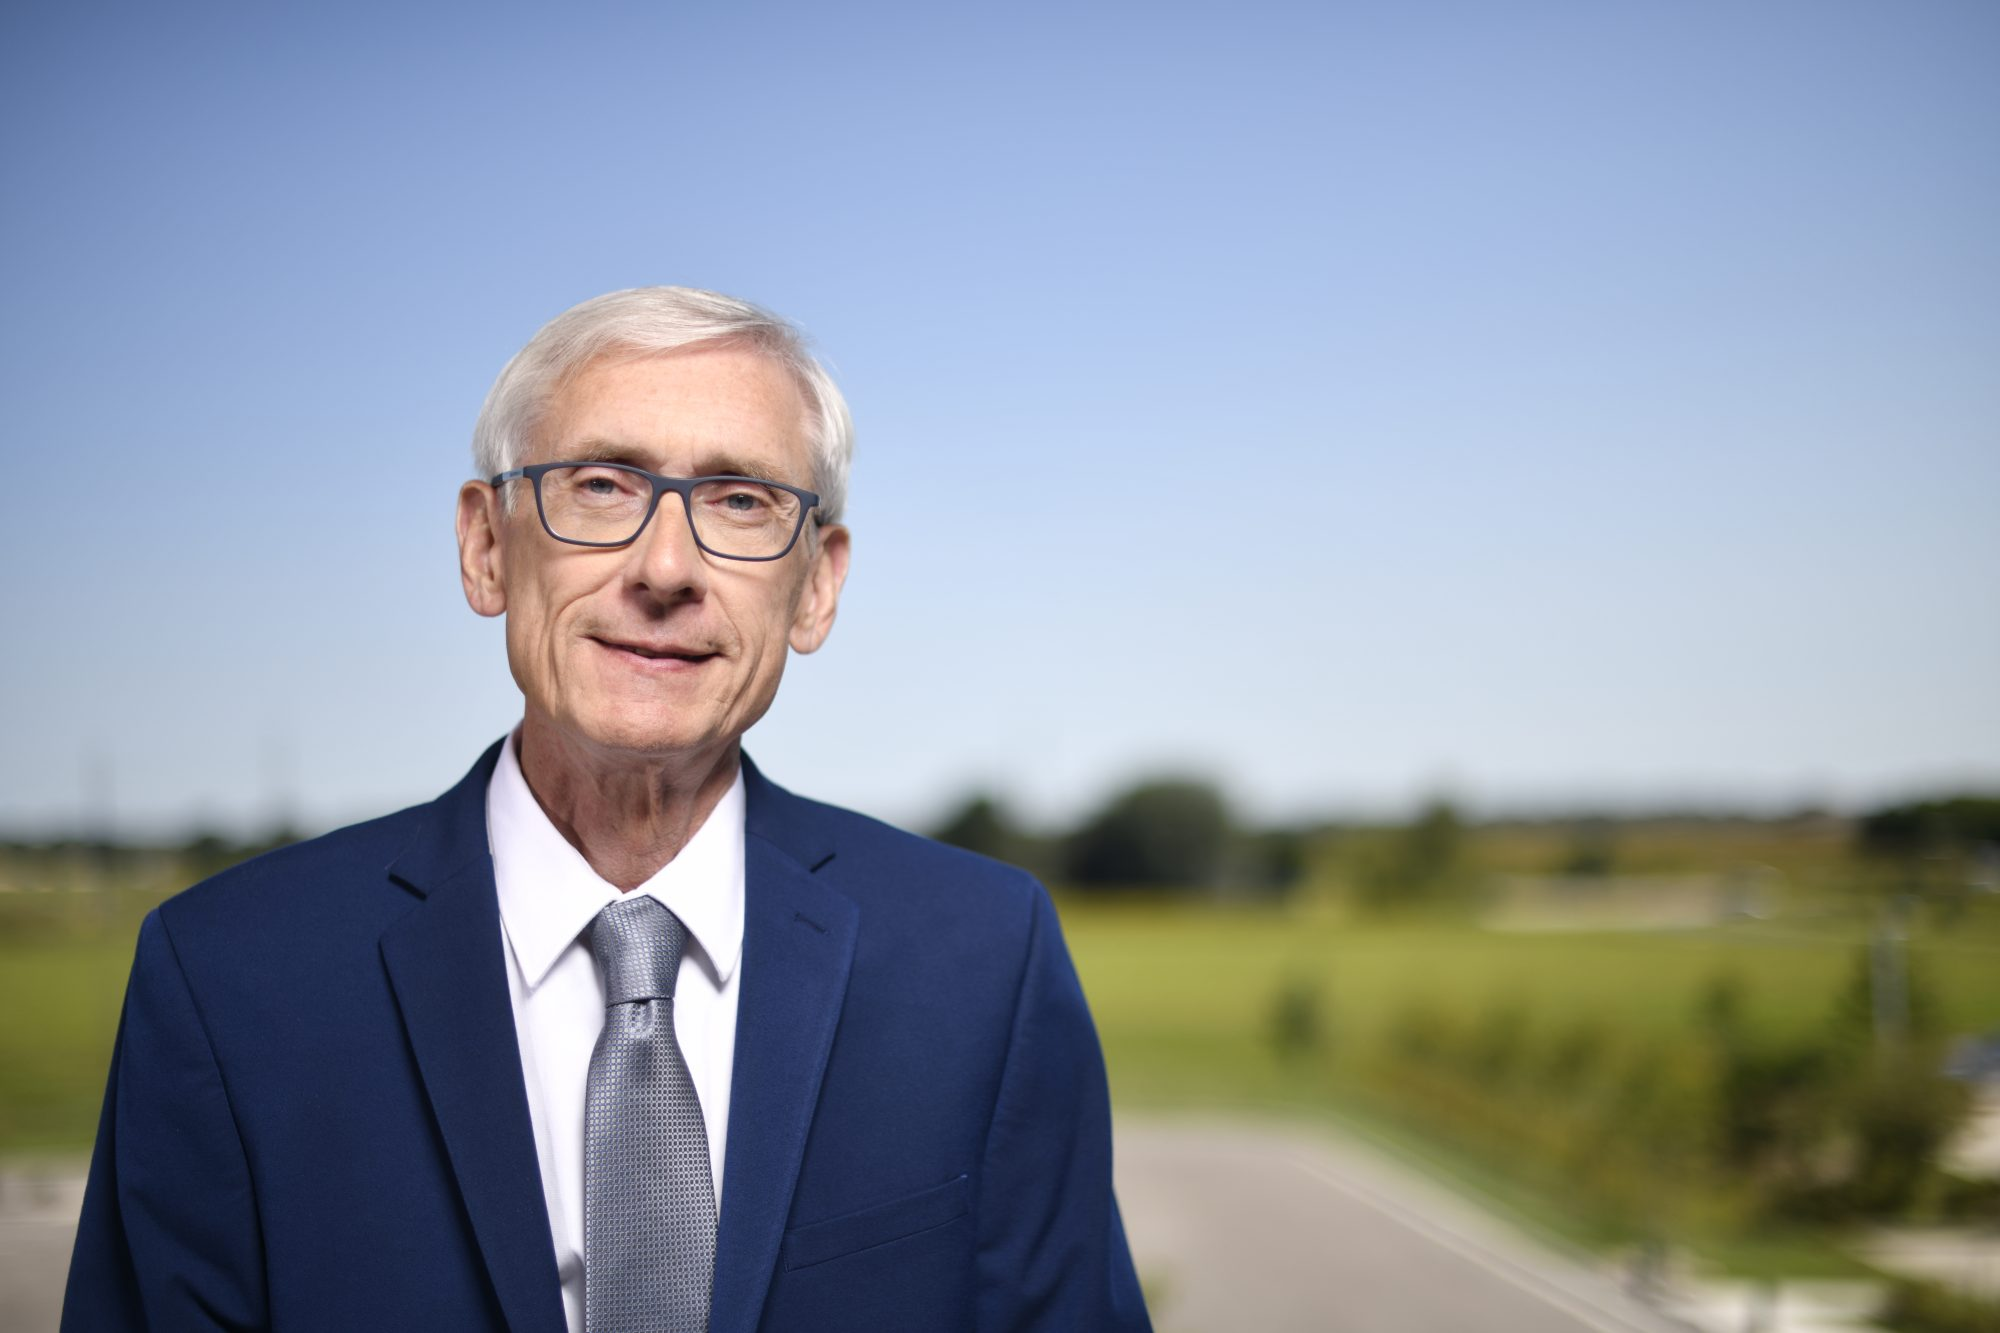 Gov. Evers Calls on Wisconsinites to Contact Their Legislators